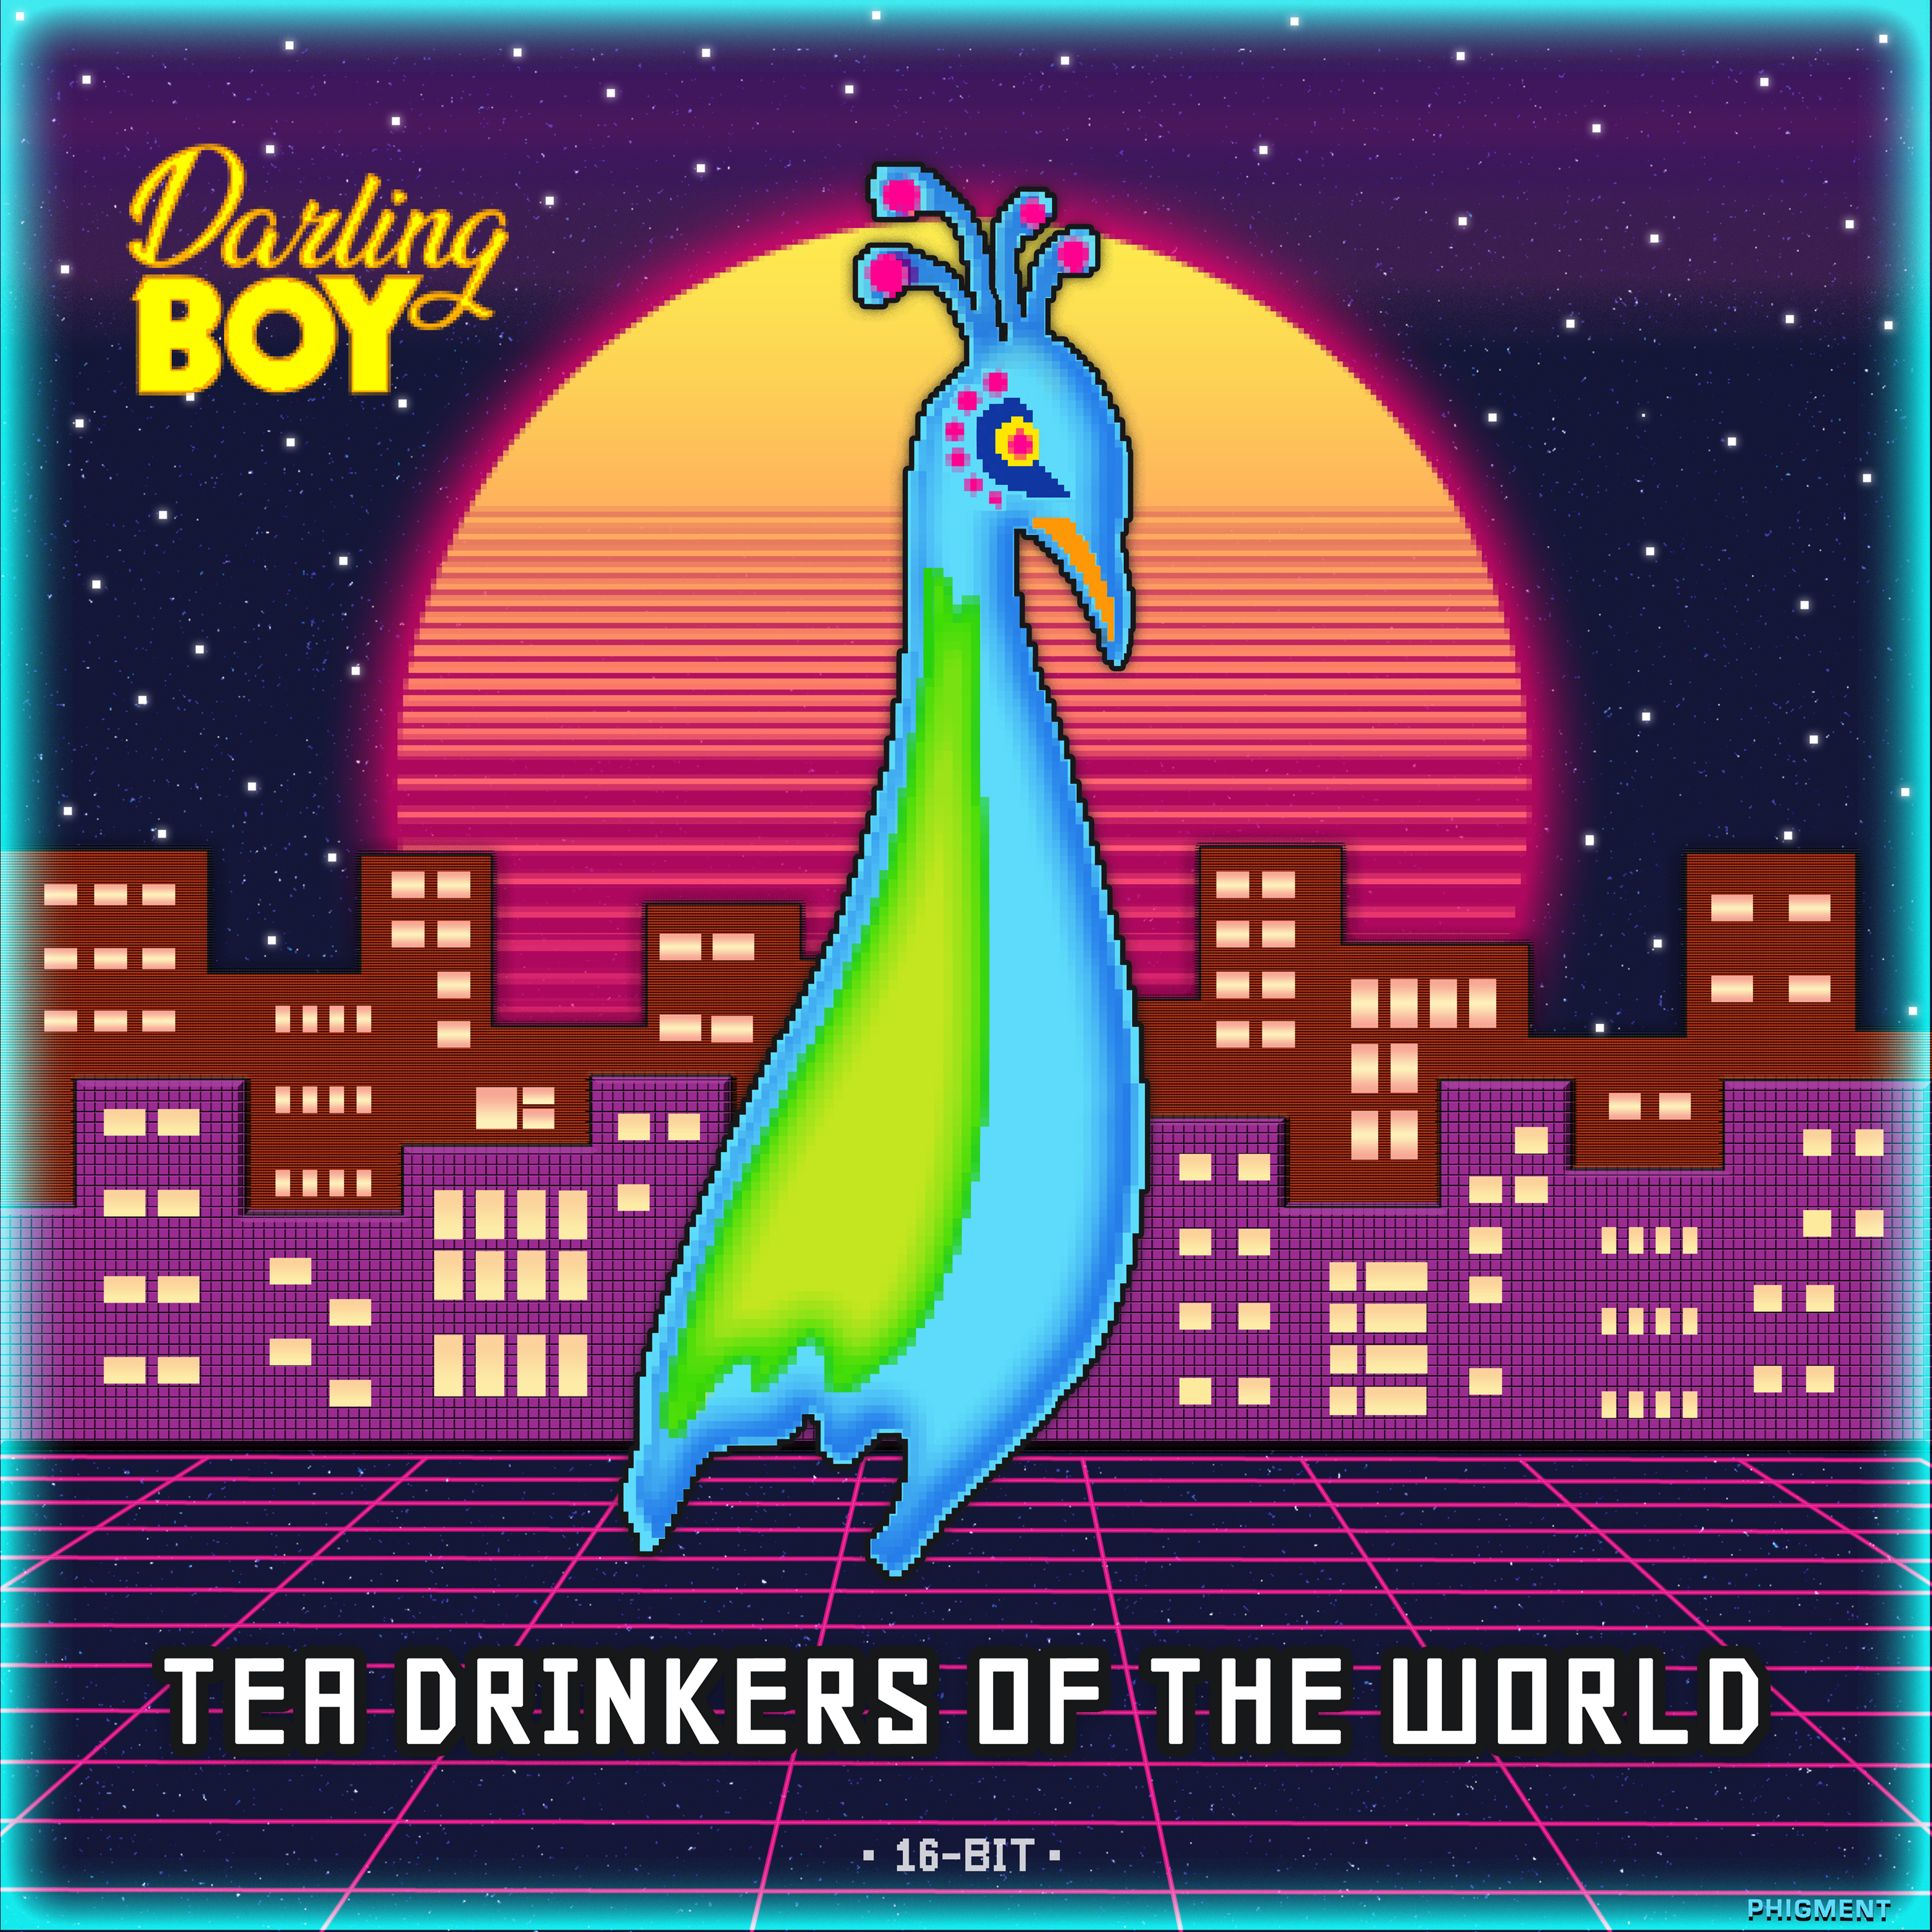 Tea Drinkers Of The World Image